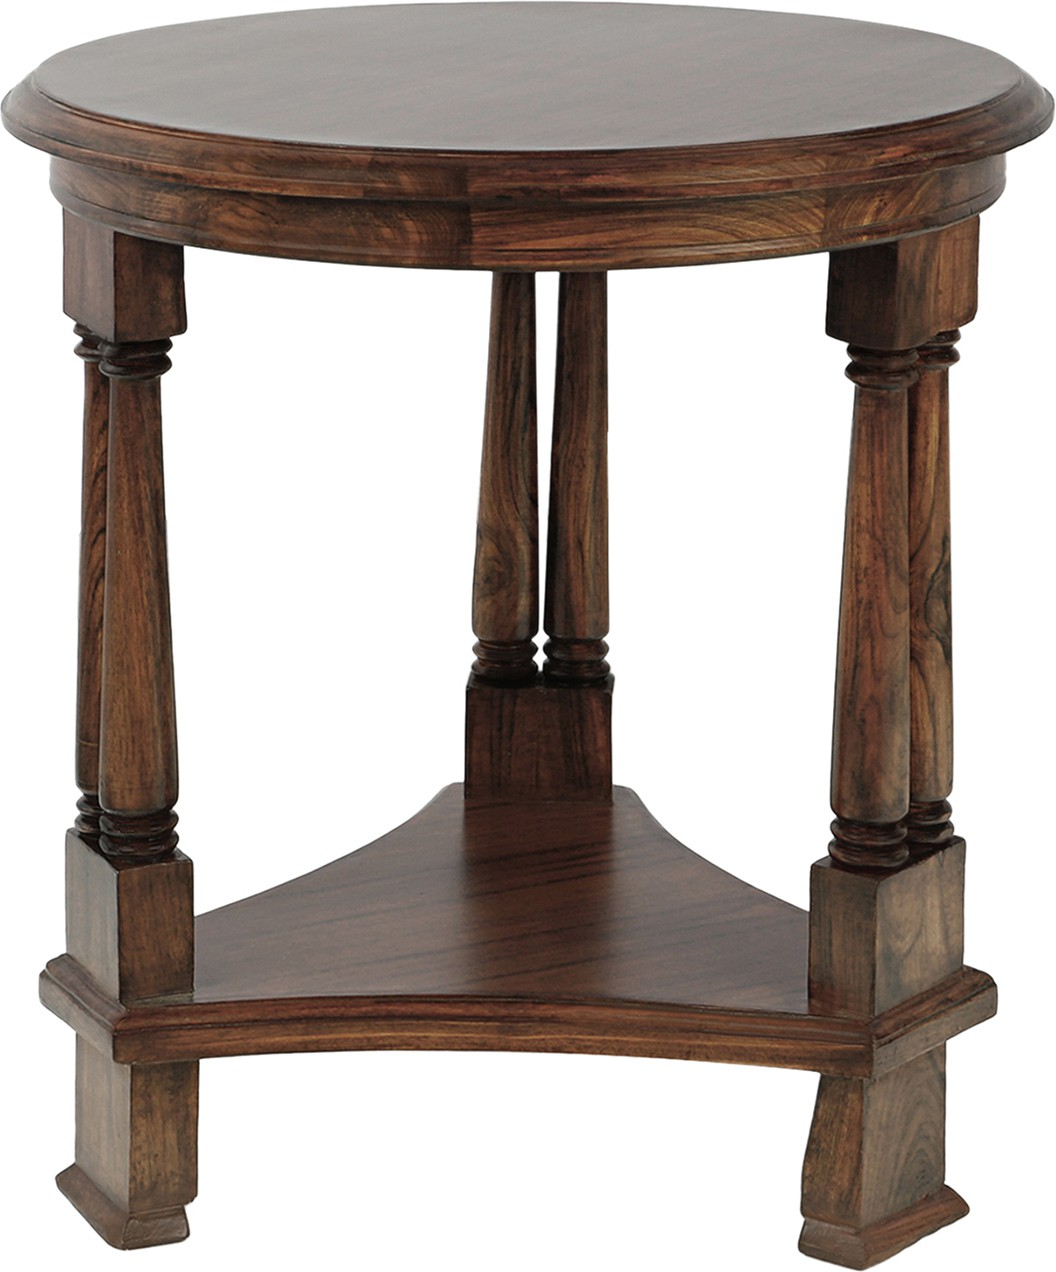 View Smarvvv Productions Classy Solid Wood Side Table(Finish Color - Brown) Furniture (Smarvvv Productions)